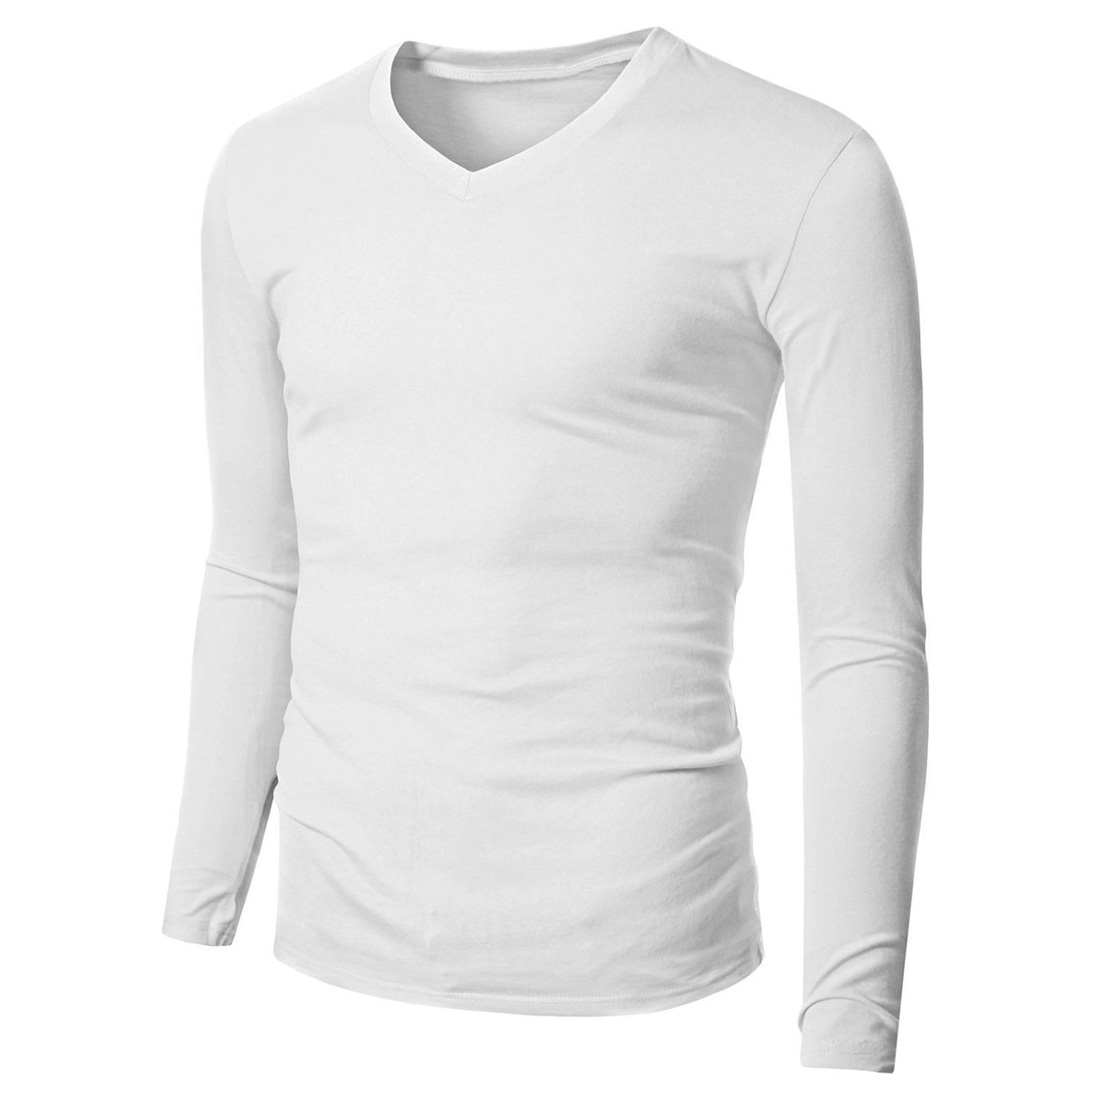 Mens Cotton Basic Tee Shirts T Shirt Long Sleeve V Neck